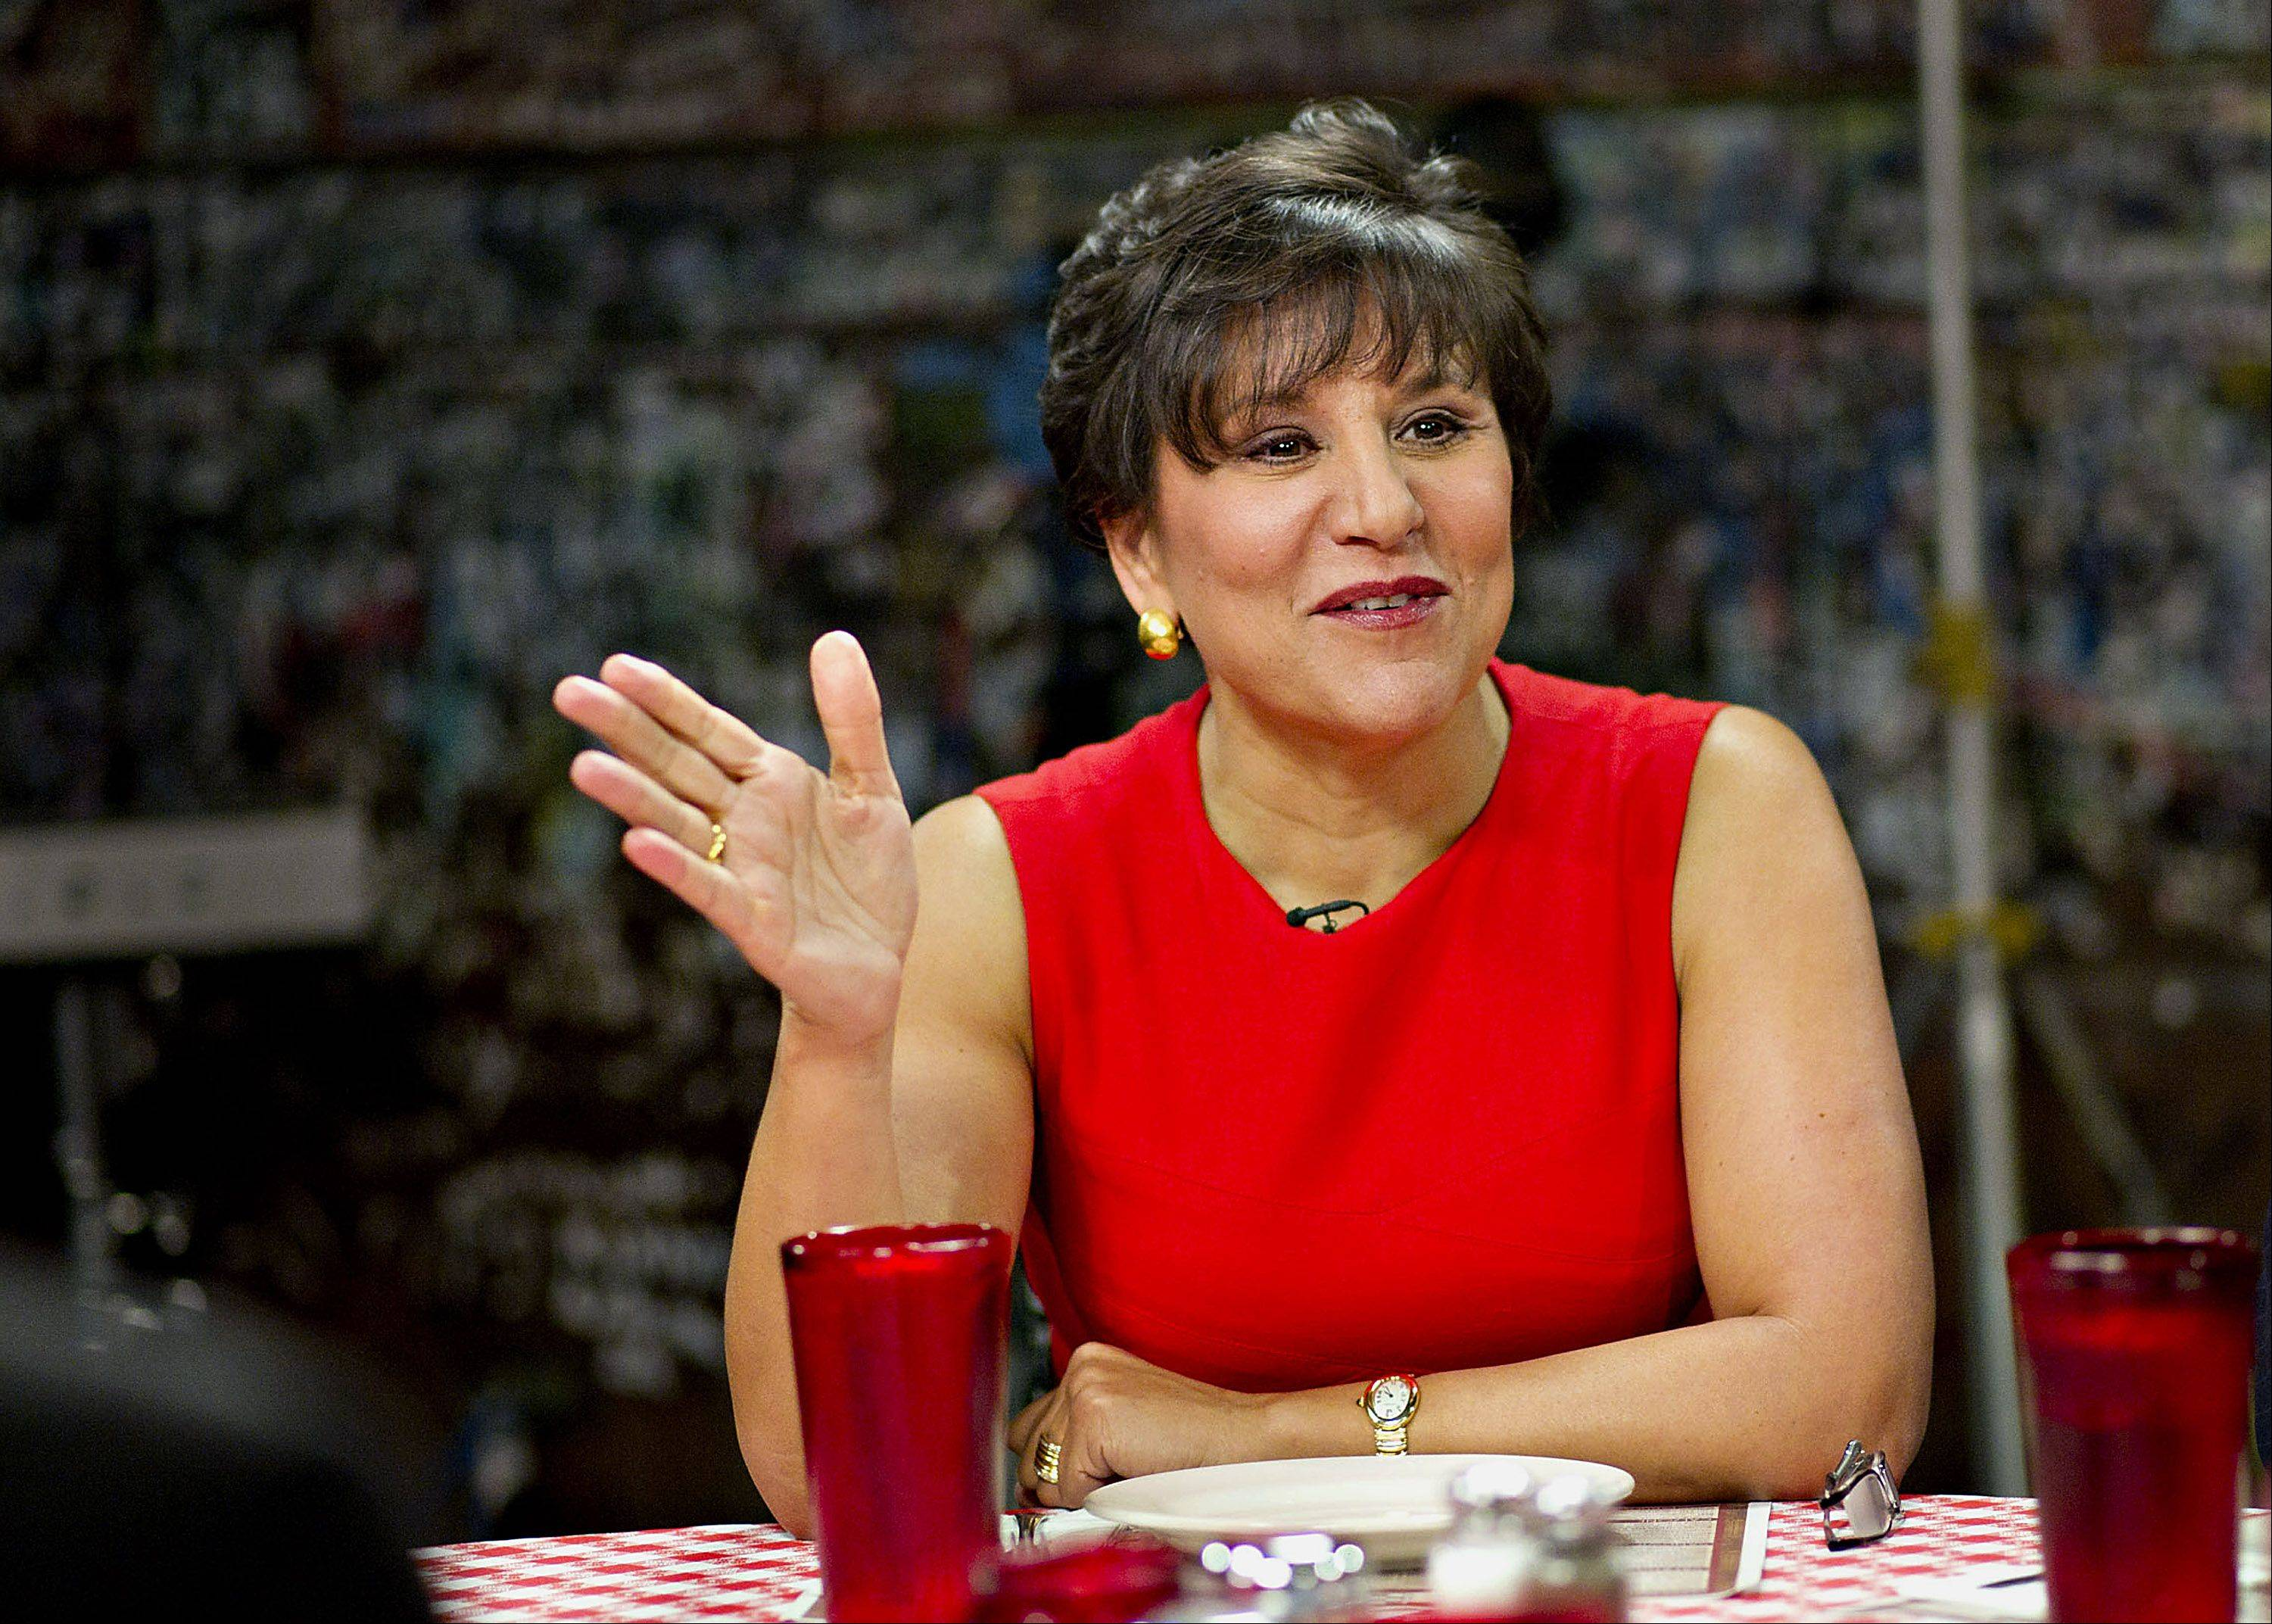 Penny Pritzker is Obama�s final pick to fill vacancies among Cabinet secretaries in his second term. The Commerce post has been vacant since last summer, when former Secretary John Bryson resigned after he said he suffered a seizure that led to a series of traffic collisions.